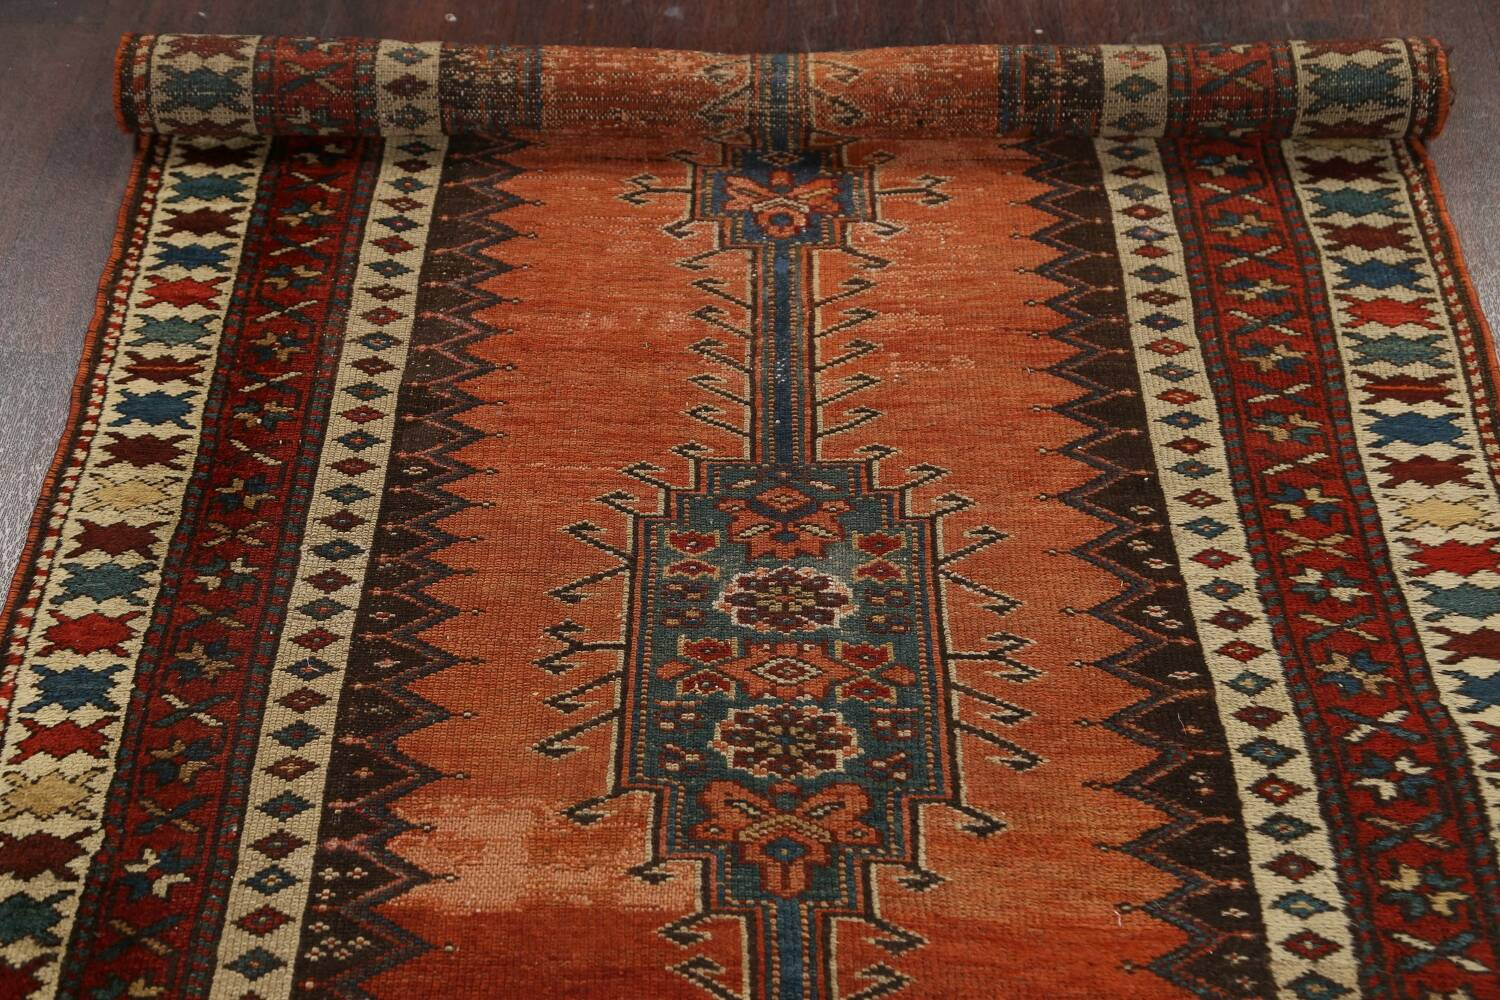 Pre-1900 Antique Vegetable Dye Malayer Persian Runner Rug 4x10 image 16